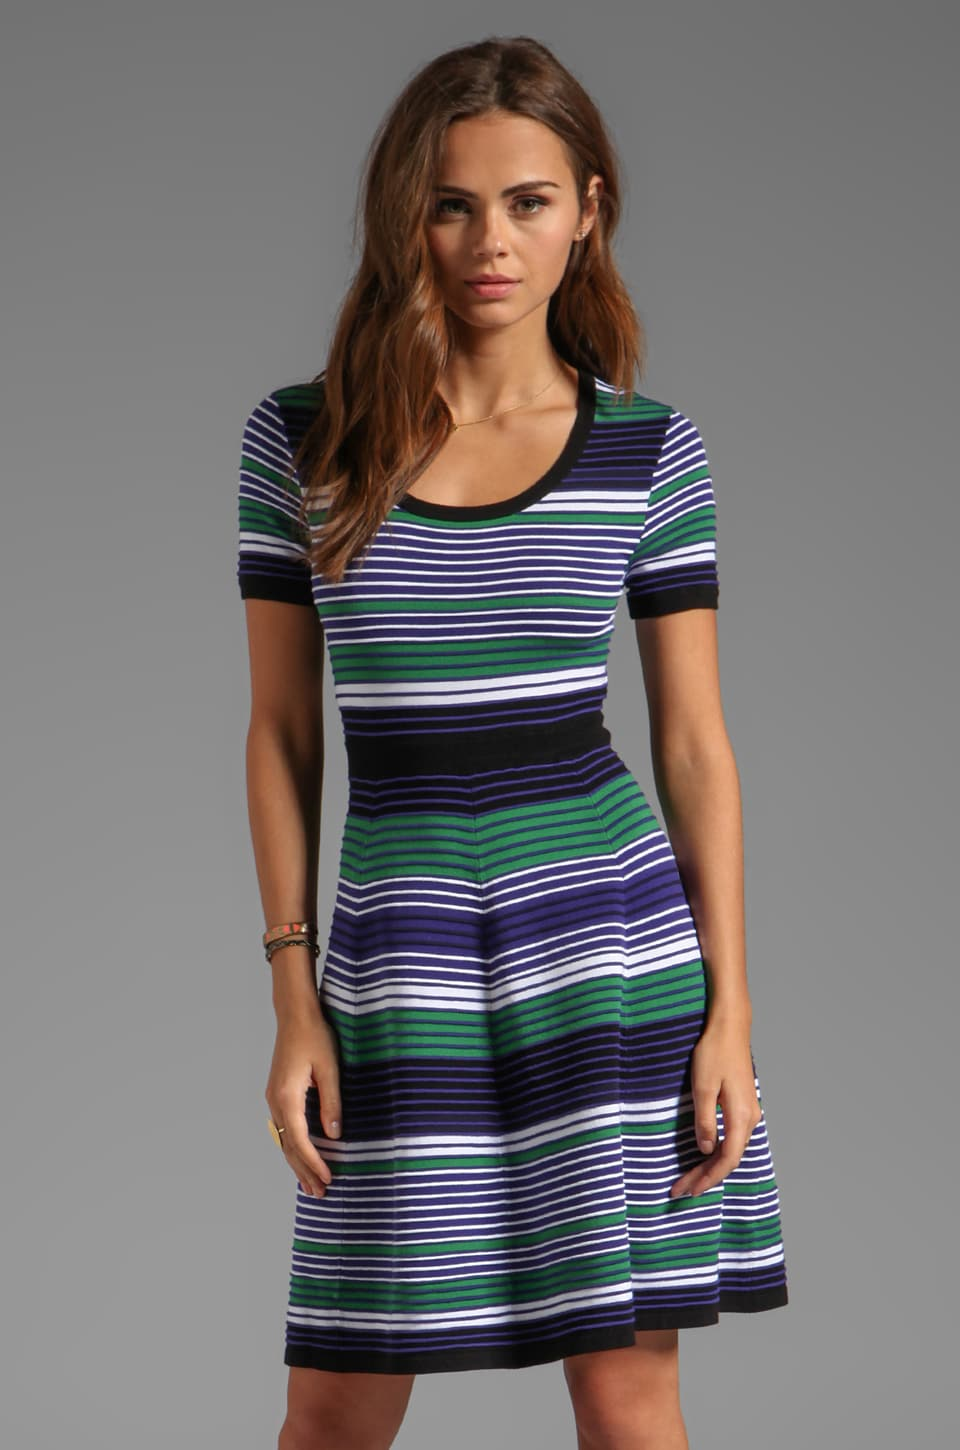 Shoshanna Pre-Fall Sweaters Striped Aviva Dress in Multi